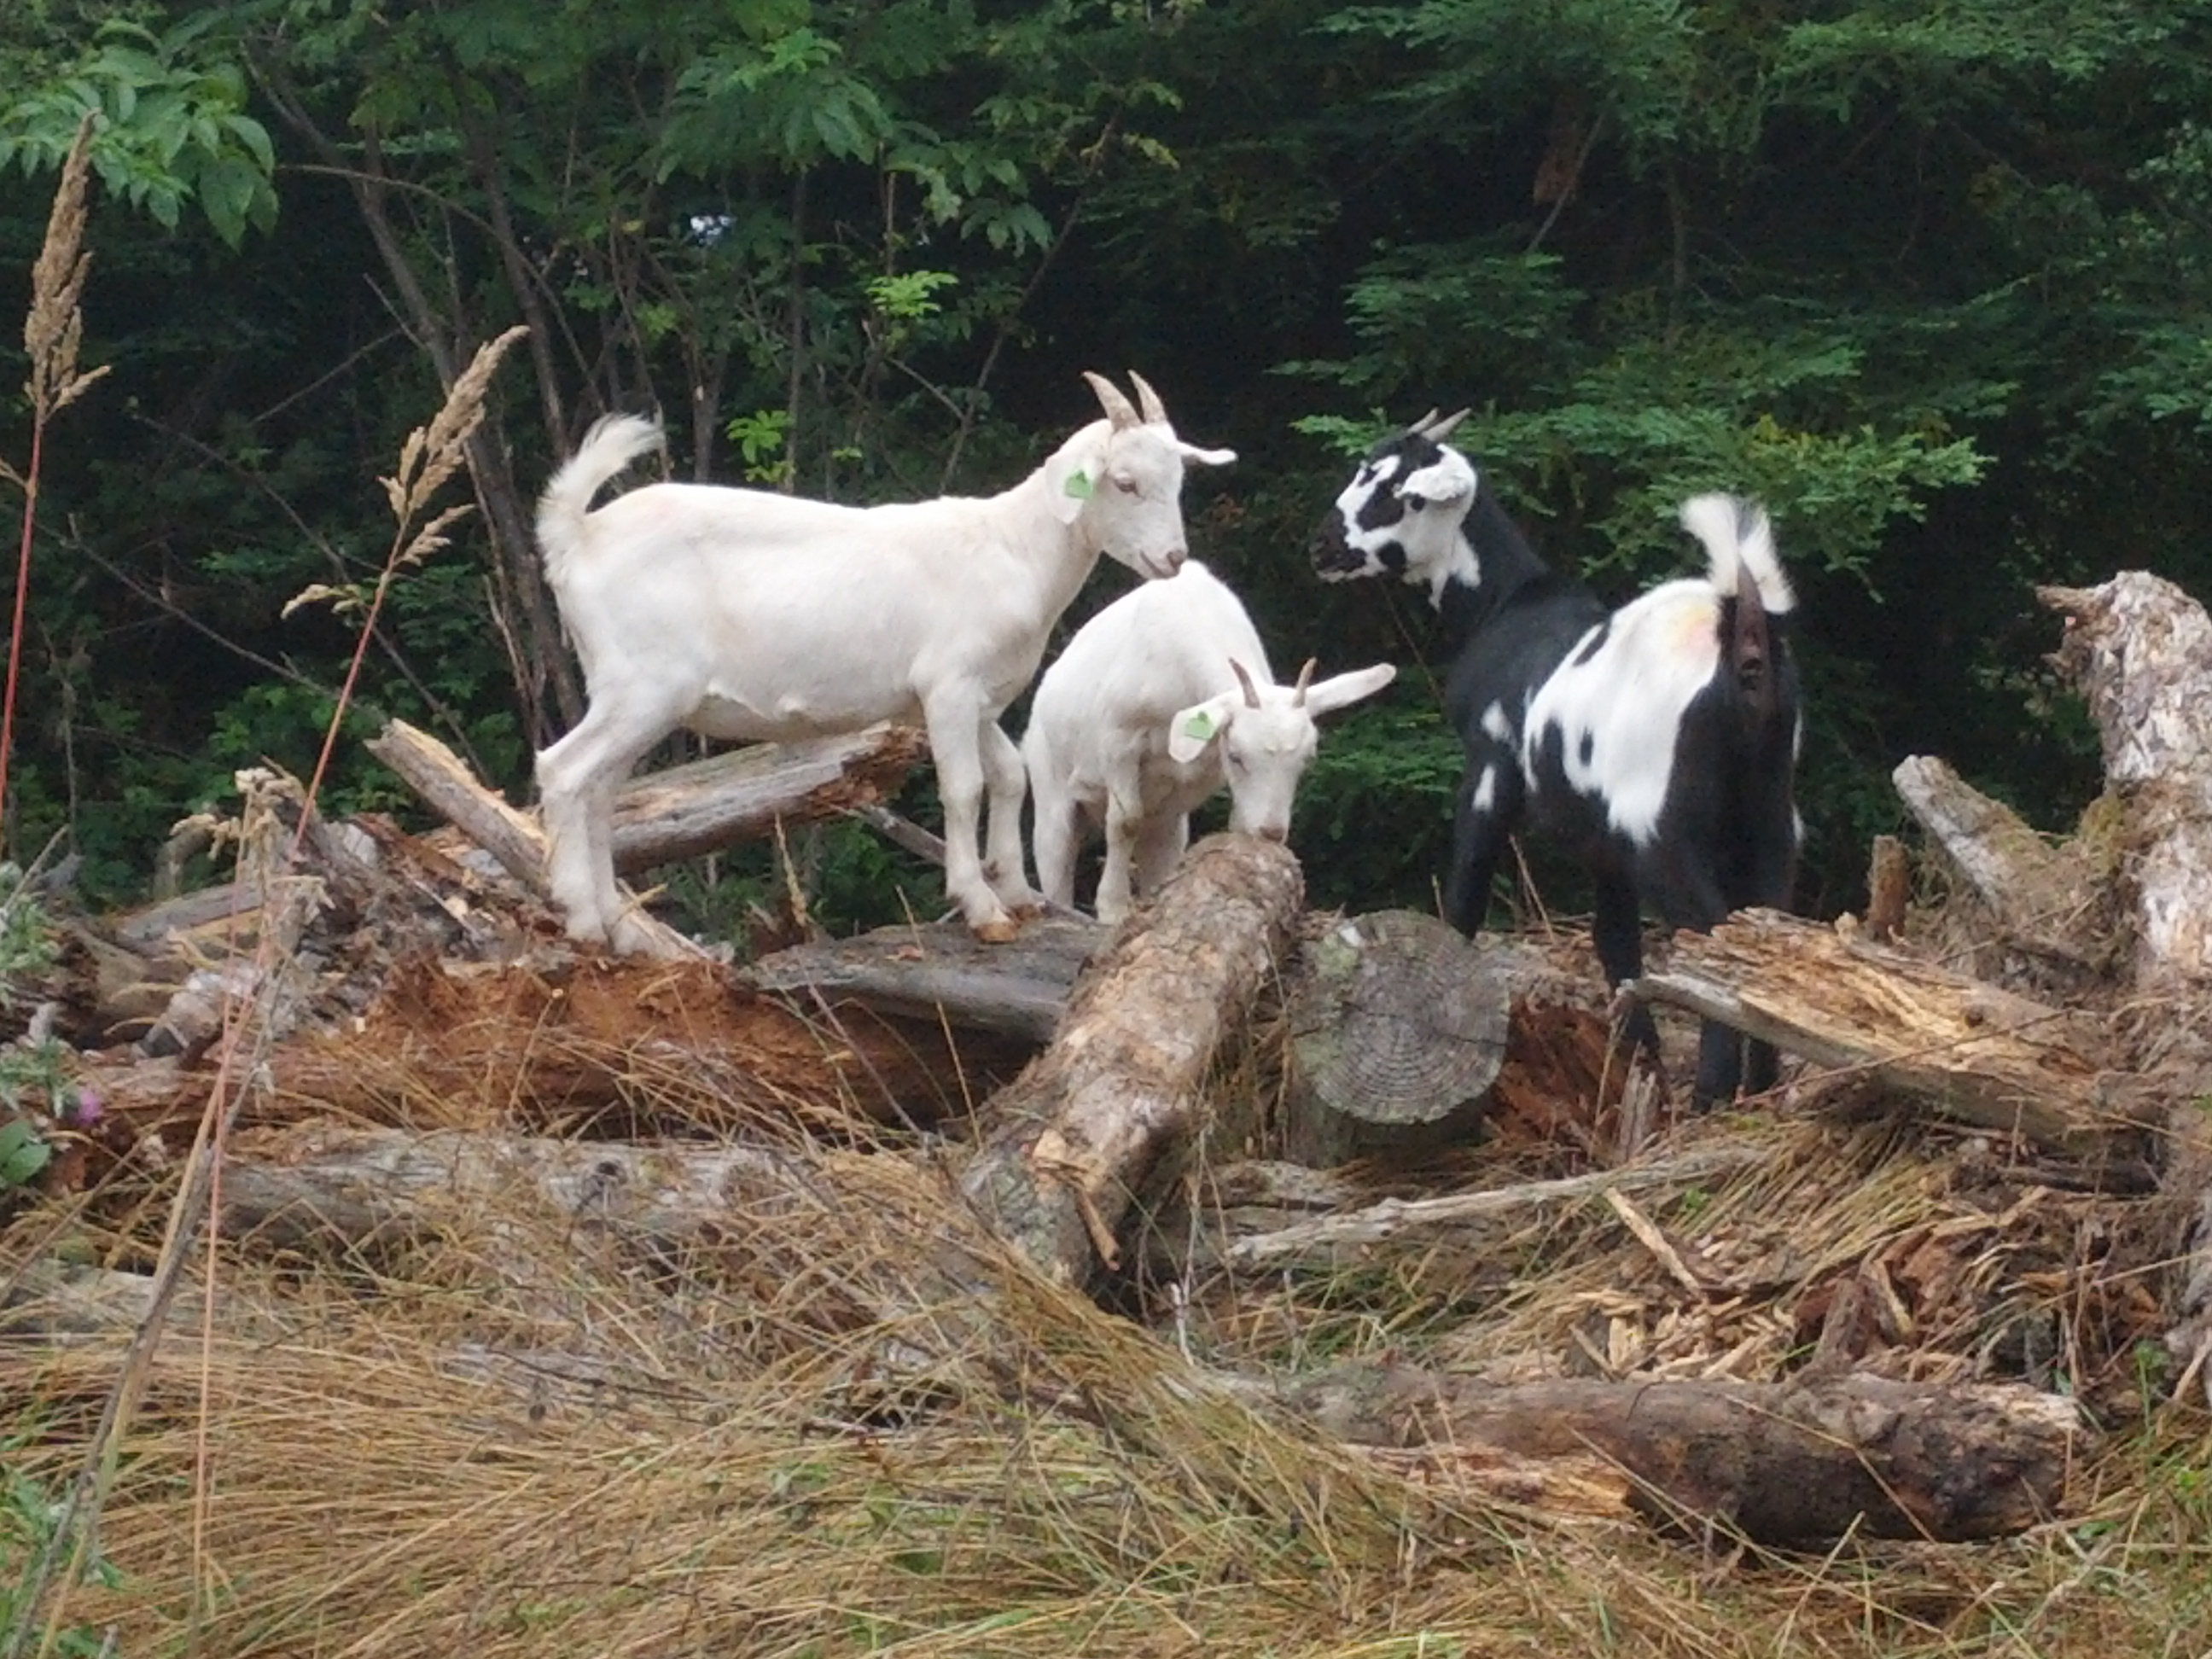 Hardiest breeds- purebred or mix? (goats forum at permies)